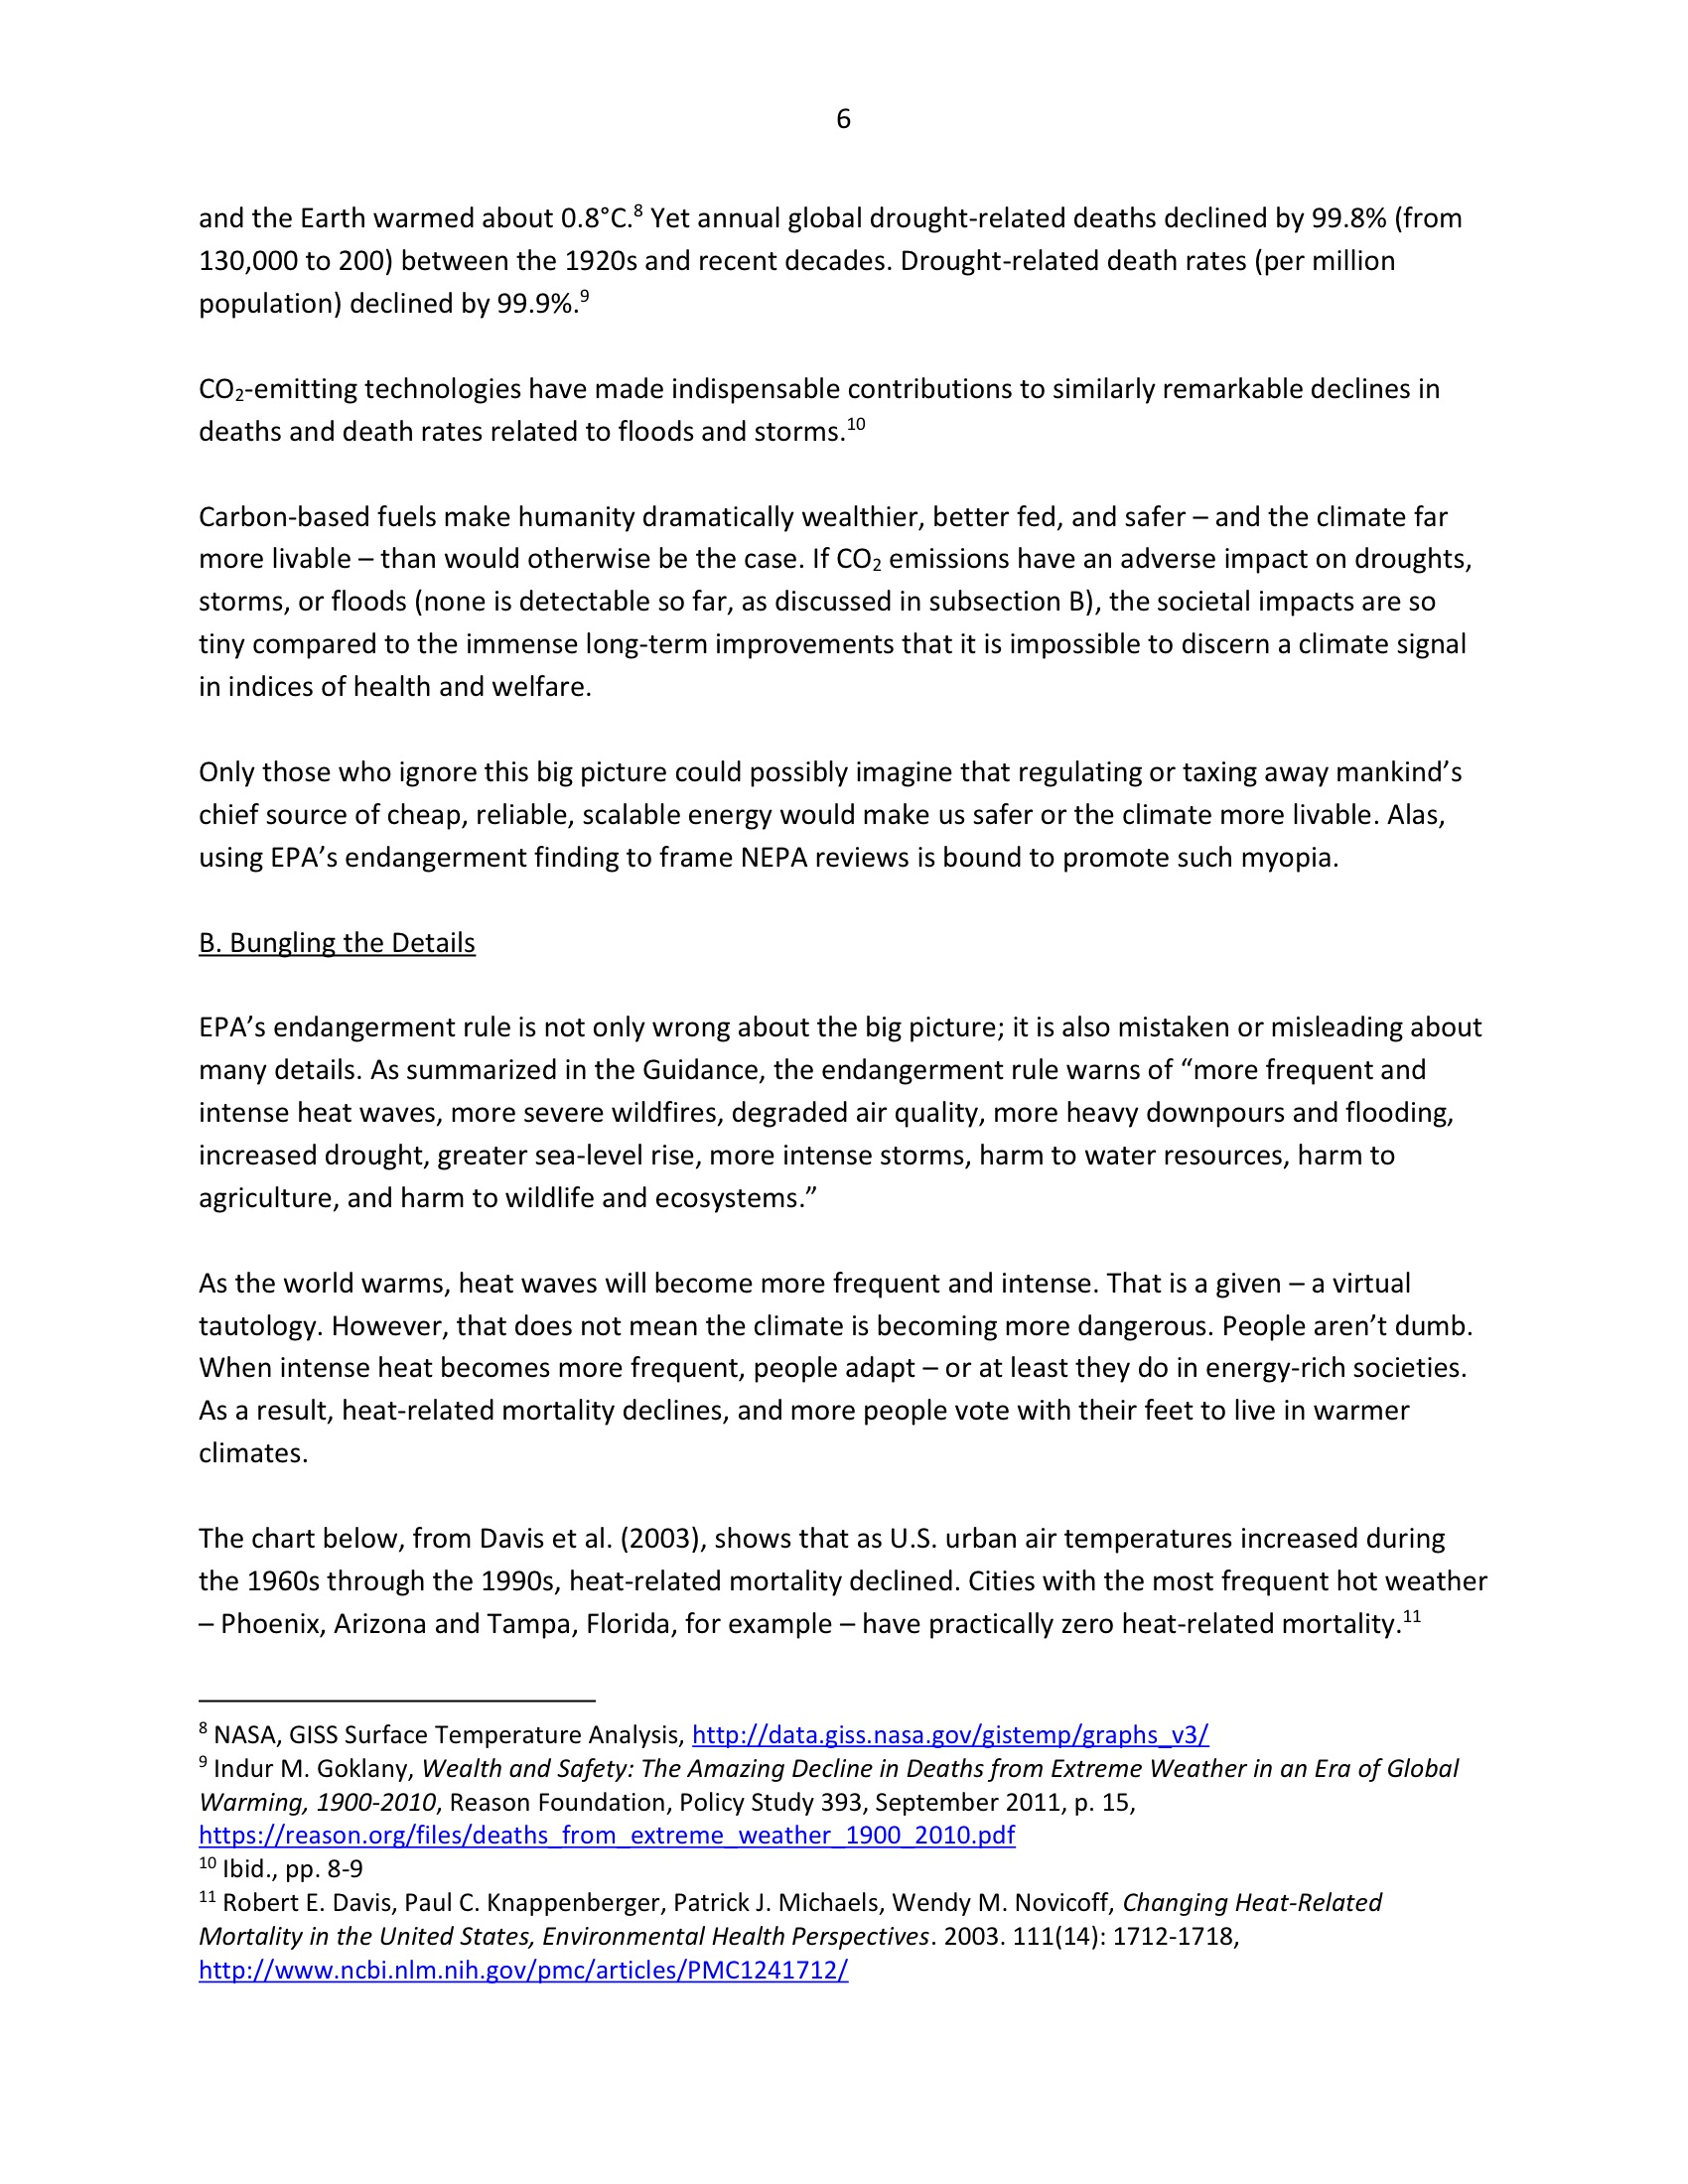 Marlo Lewis Competitive Enterprise Institute and Free Market Allies Comment Letter on NEPA GHG Guidance Document 78-6